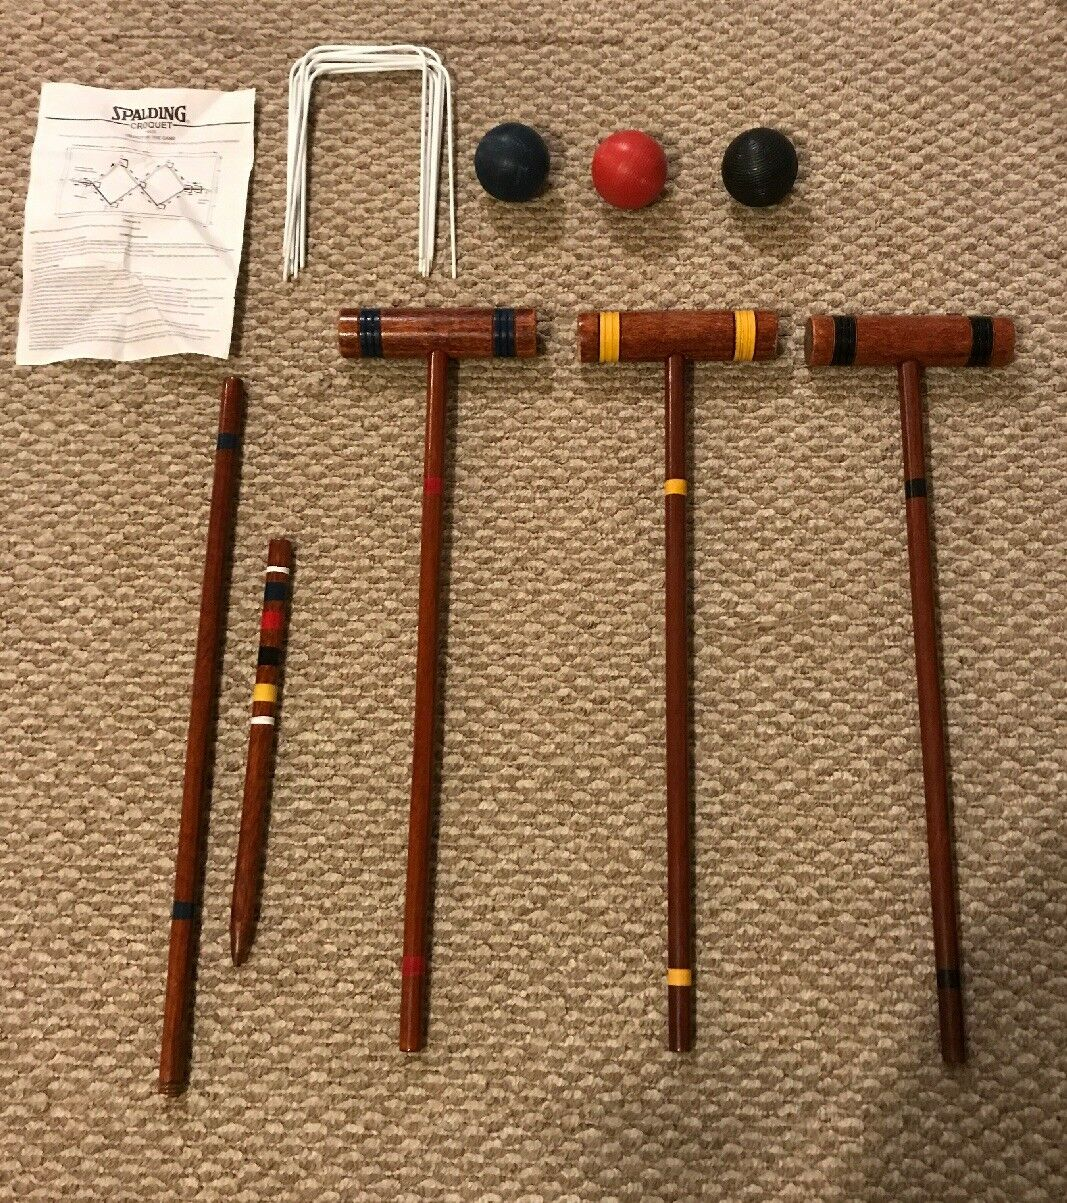 Spalding 3 Player Dark Wood  Croquet Set With Carry Bag Outdoors Game  large selection